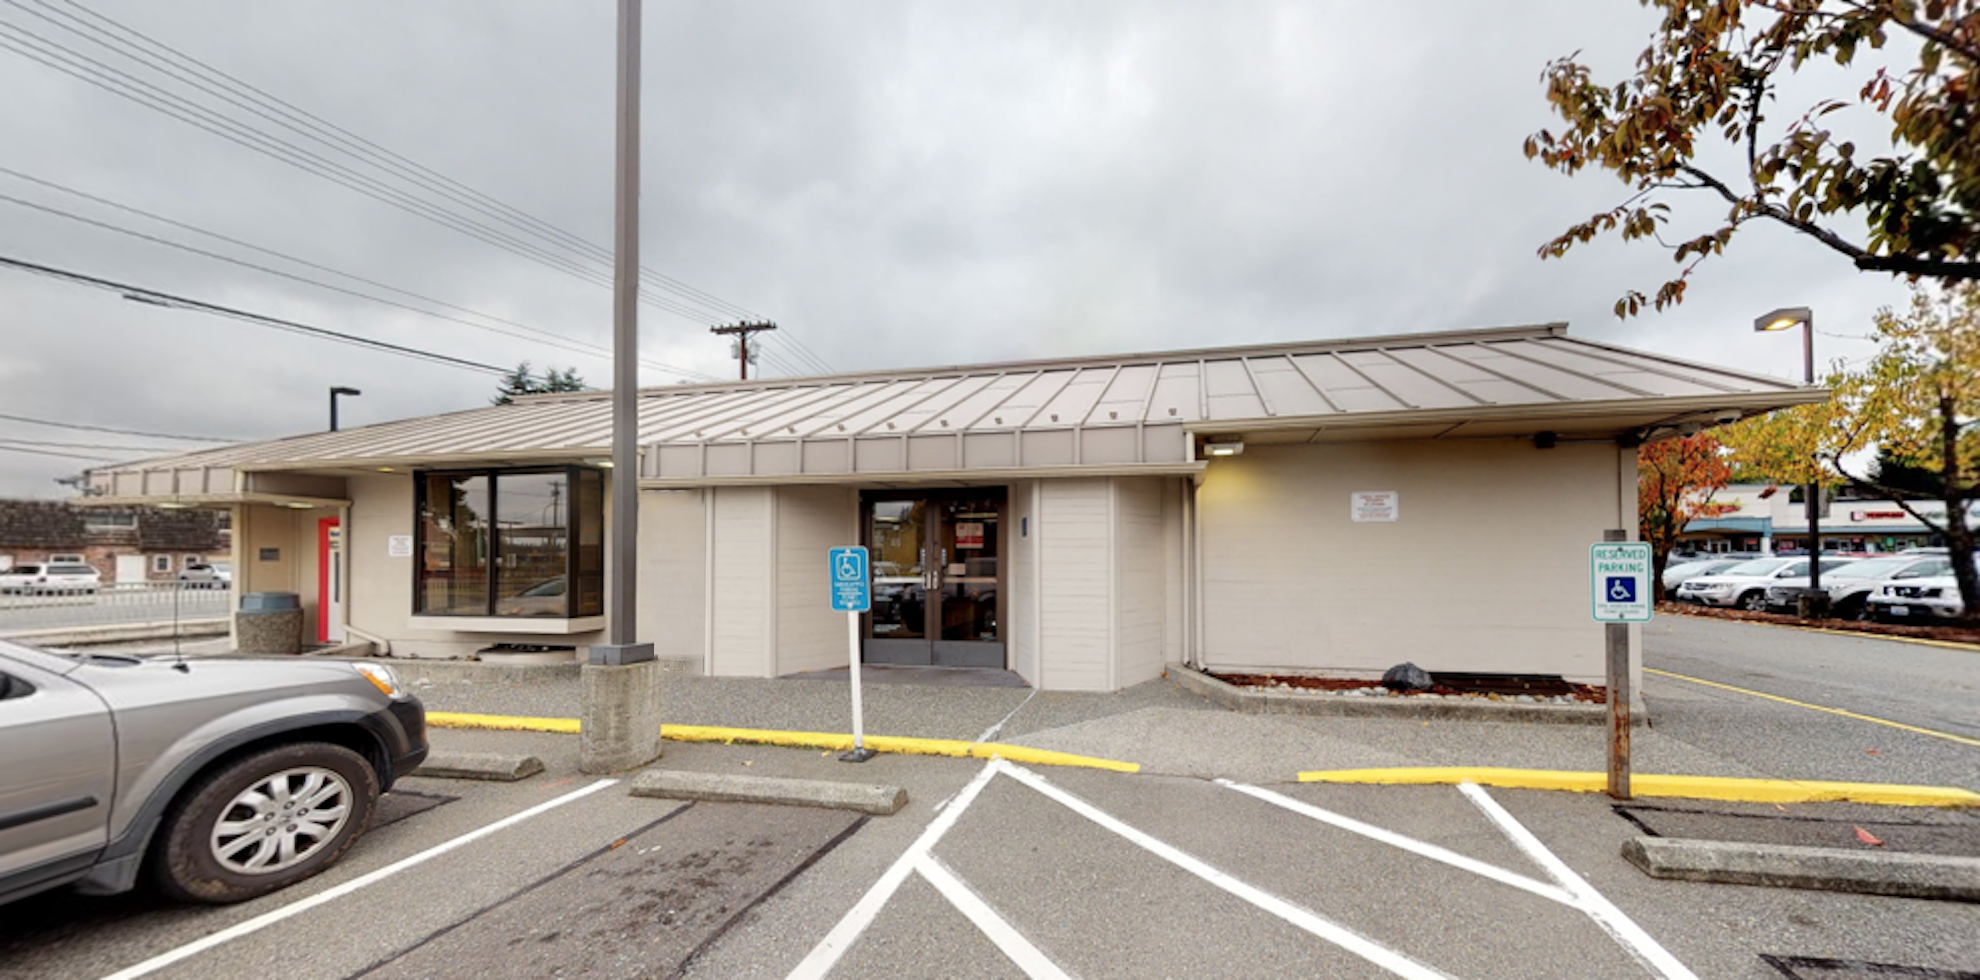 Bank of America financial center with drive-thru ATM | 1803 112th St SE, Everett, WA 98208